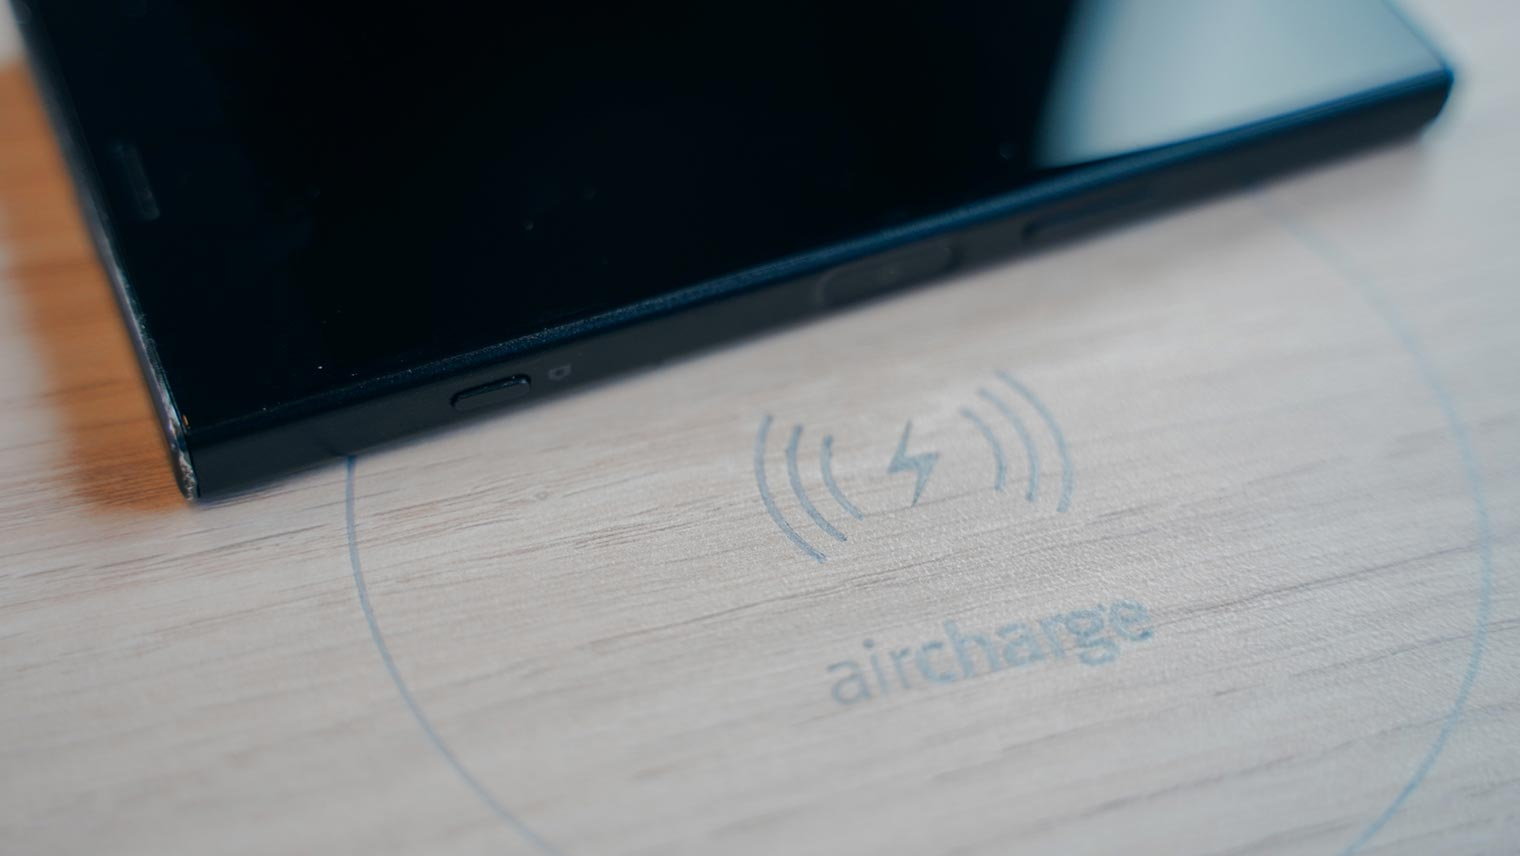 SWR First Class Aircharge